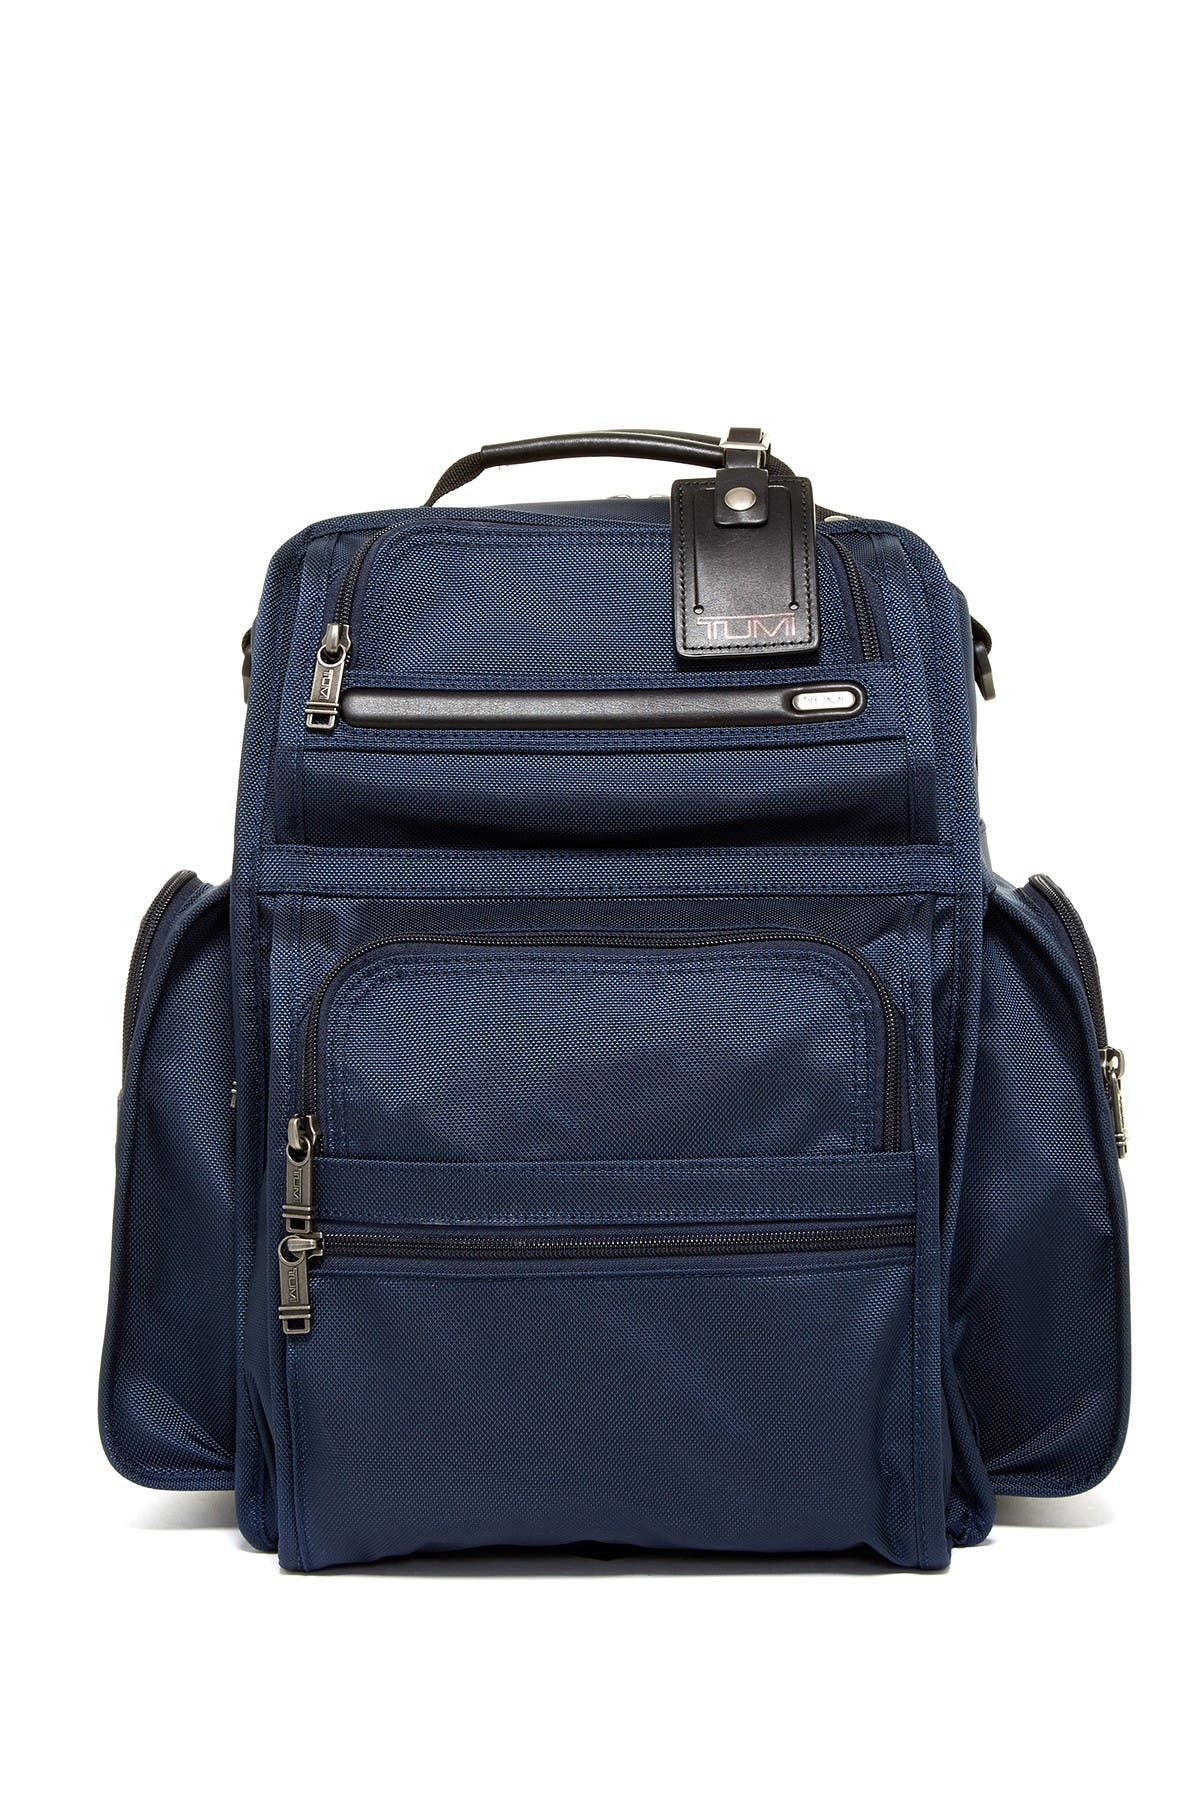 Image of Tumi T-Pass Business Class Nylon Brief Pack